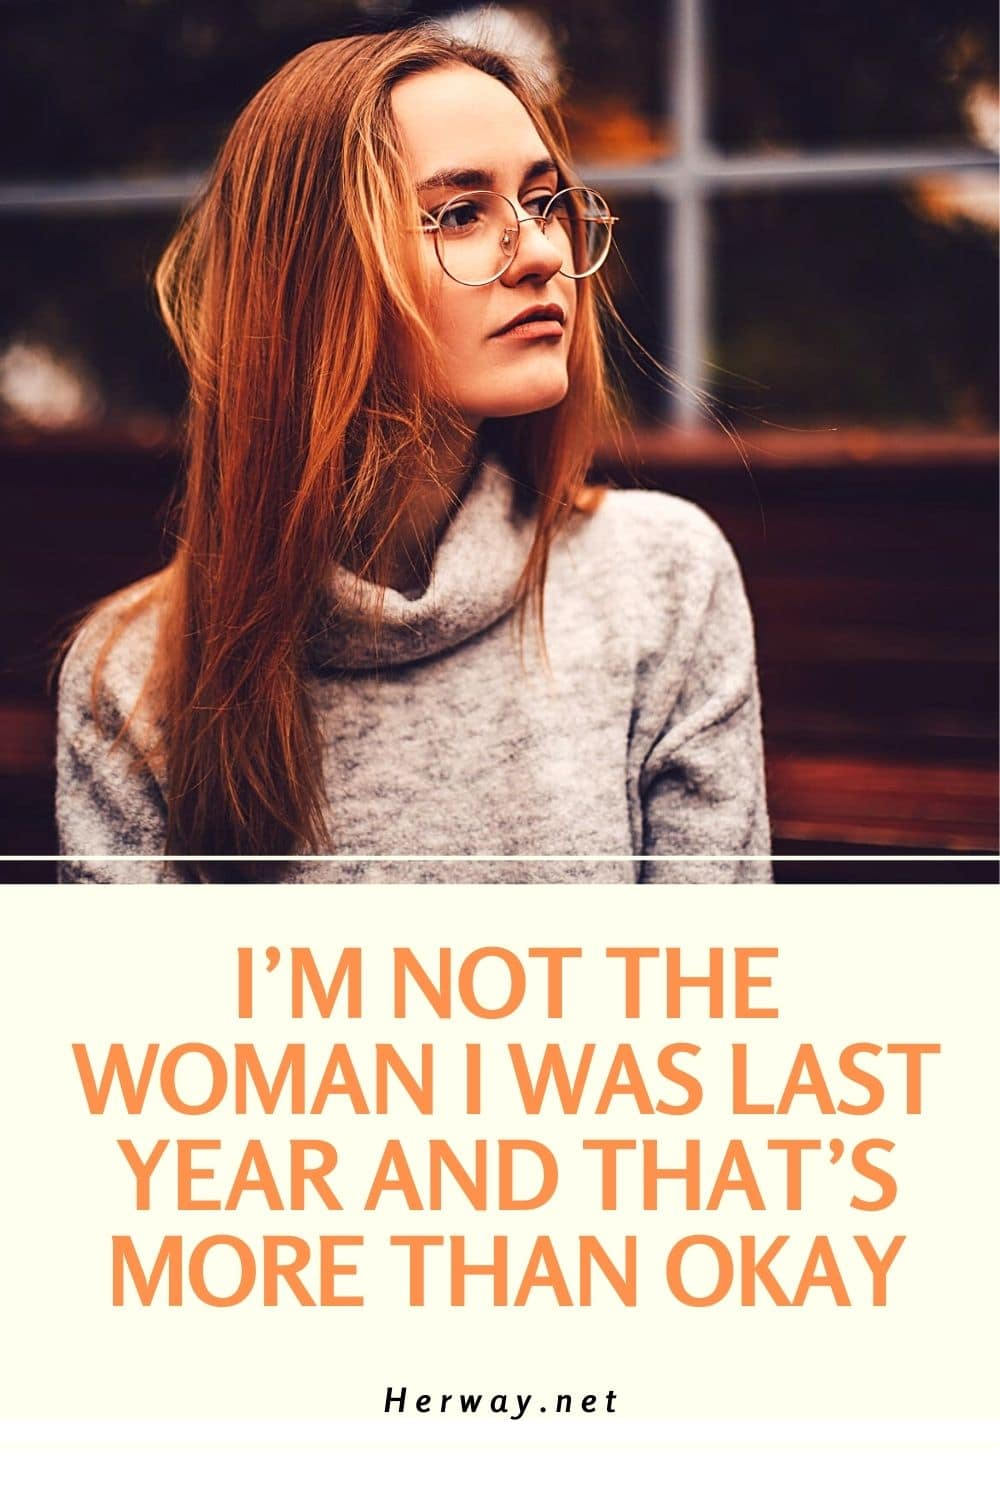 I'm Not The Woman I Was Last Year And That's More Than Okay